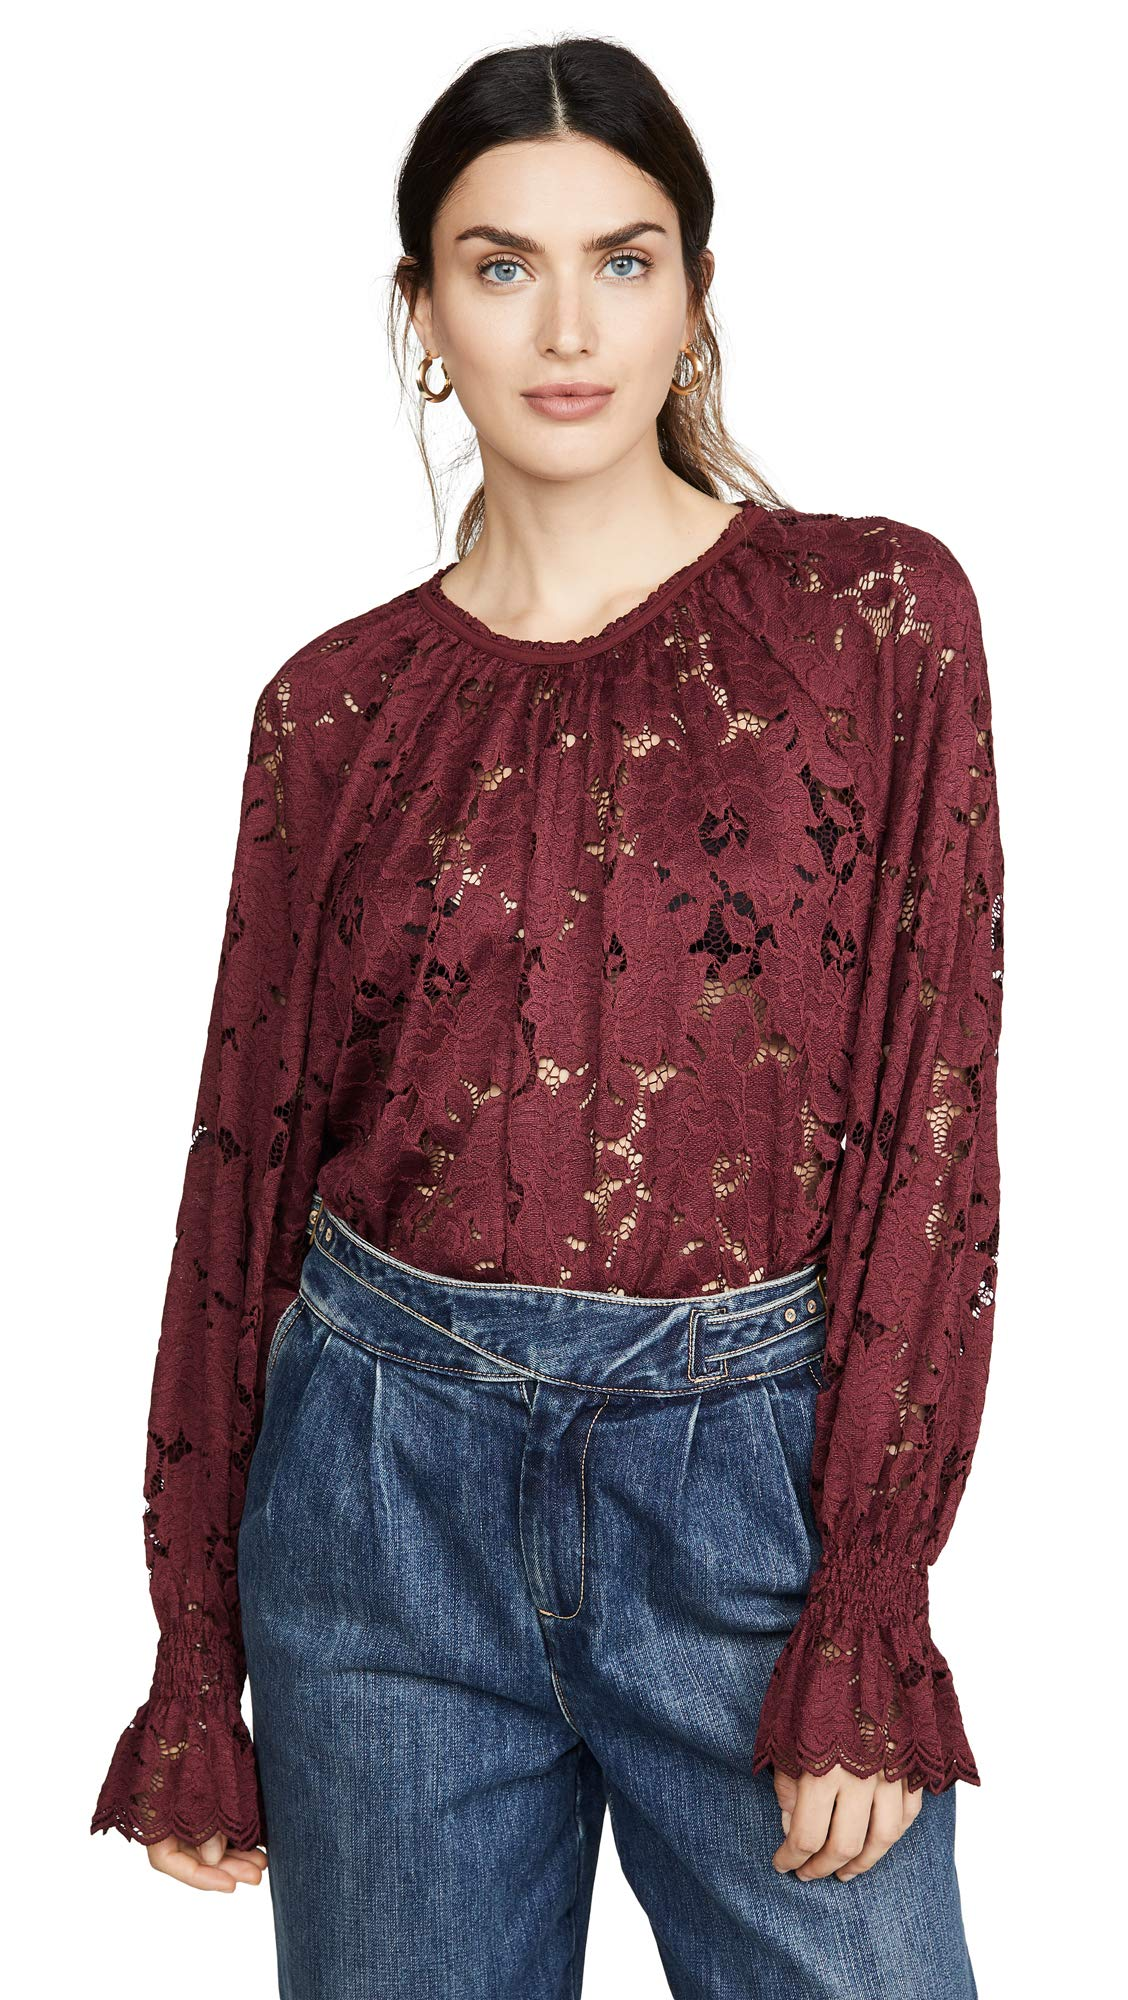 Free People Women's Olivia Lace Top, Wine, Red, Small by Free People